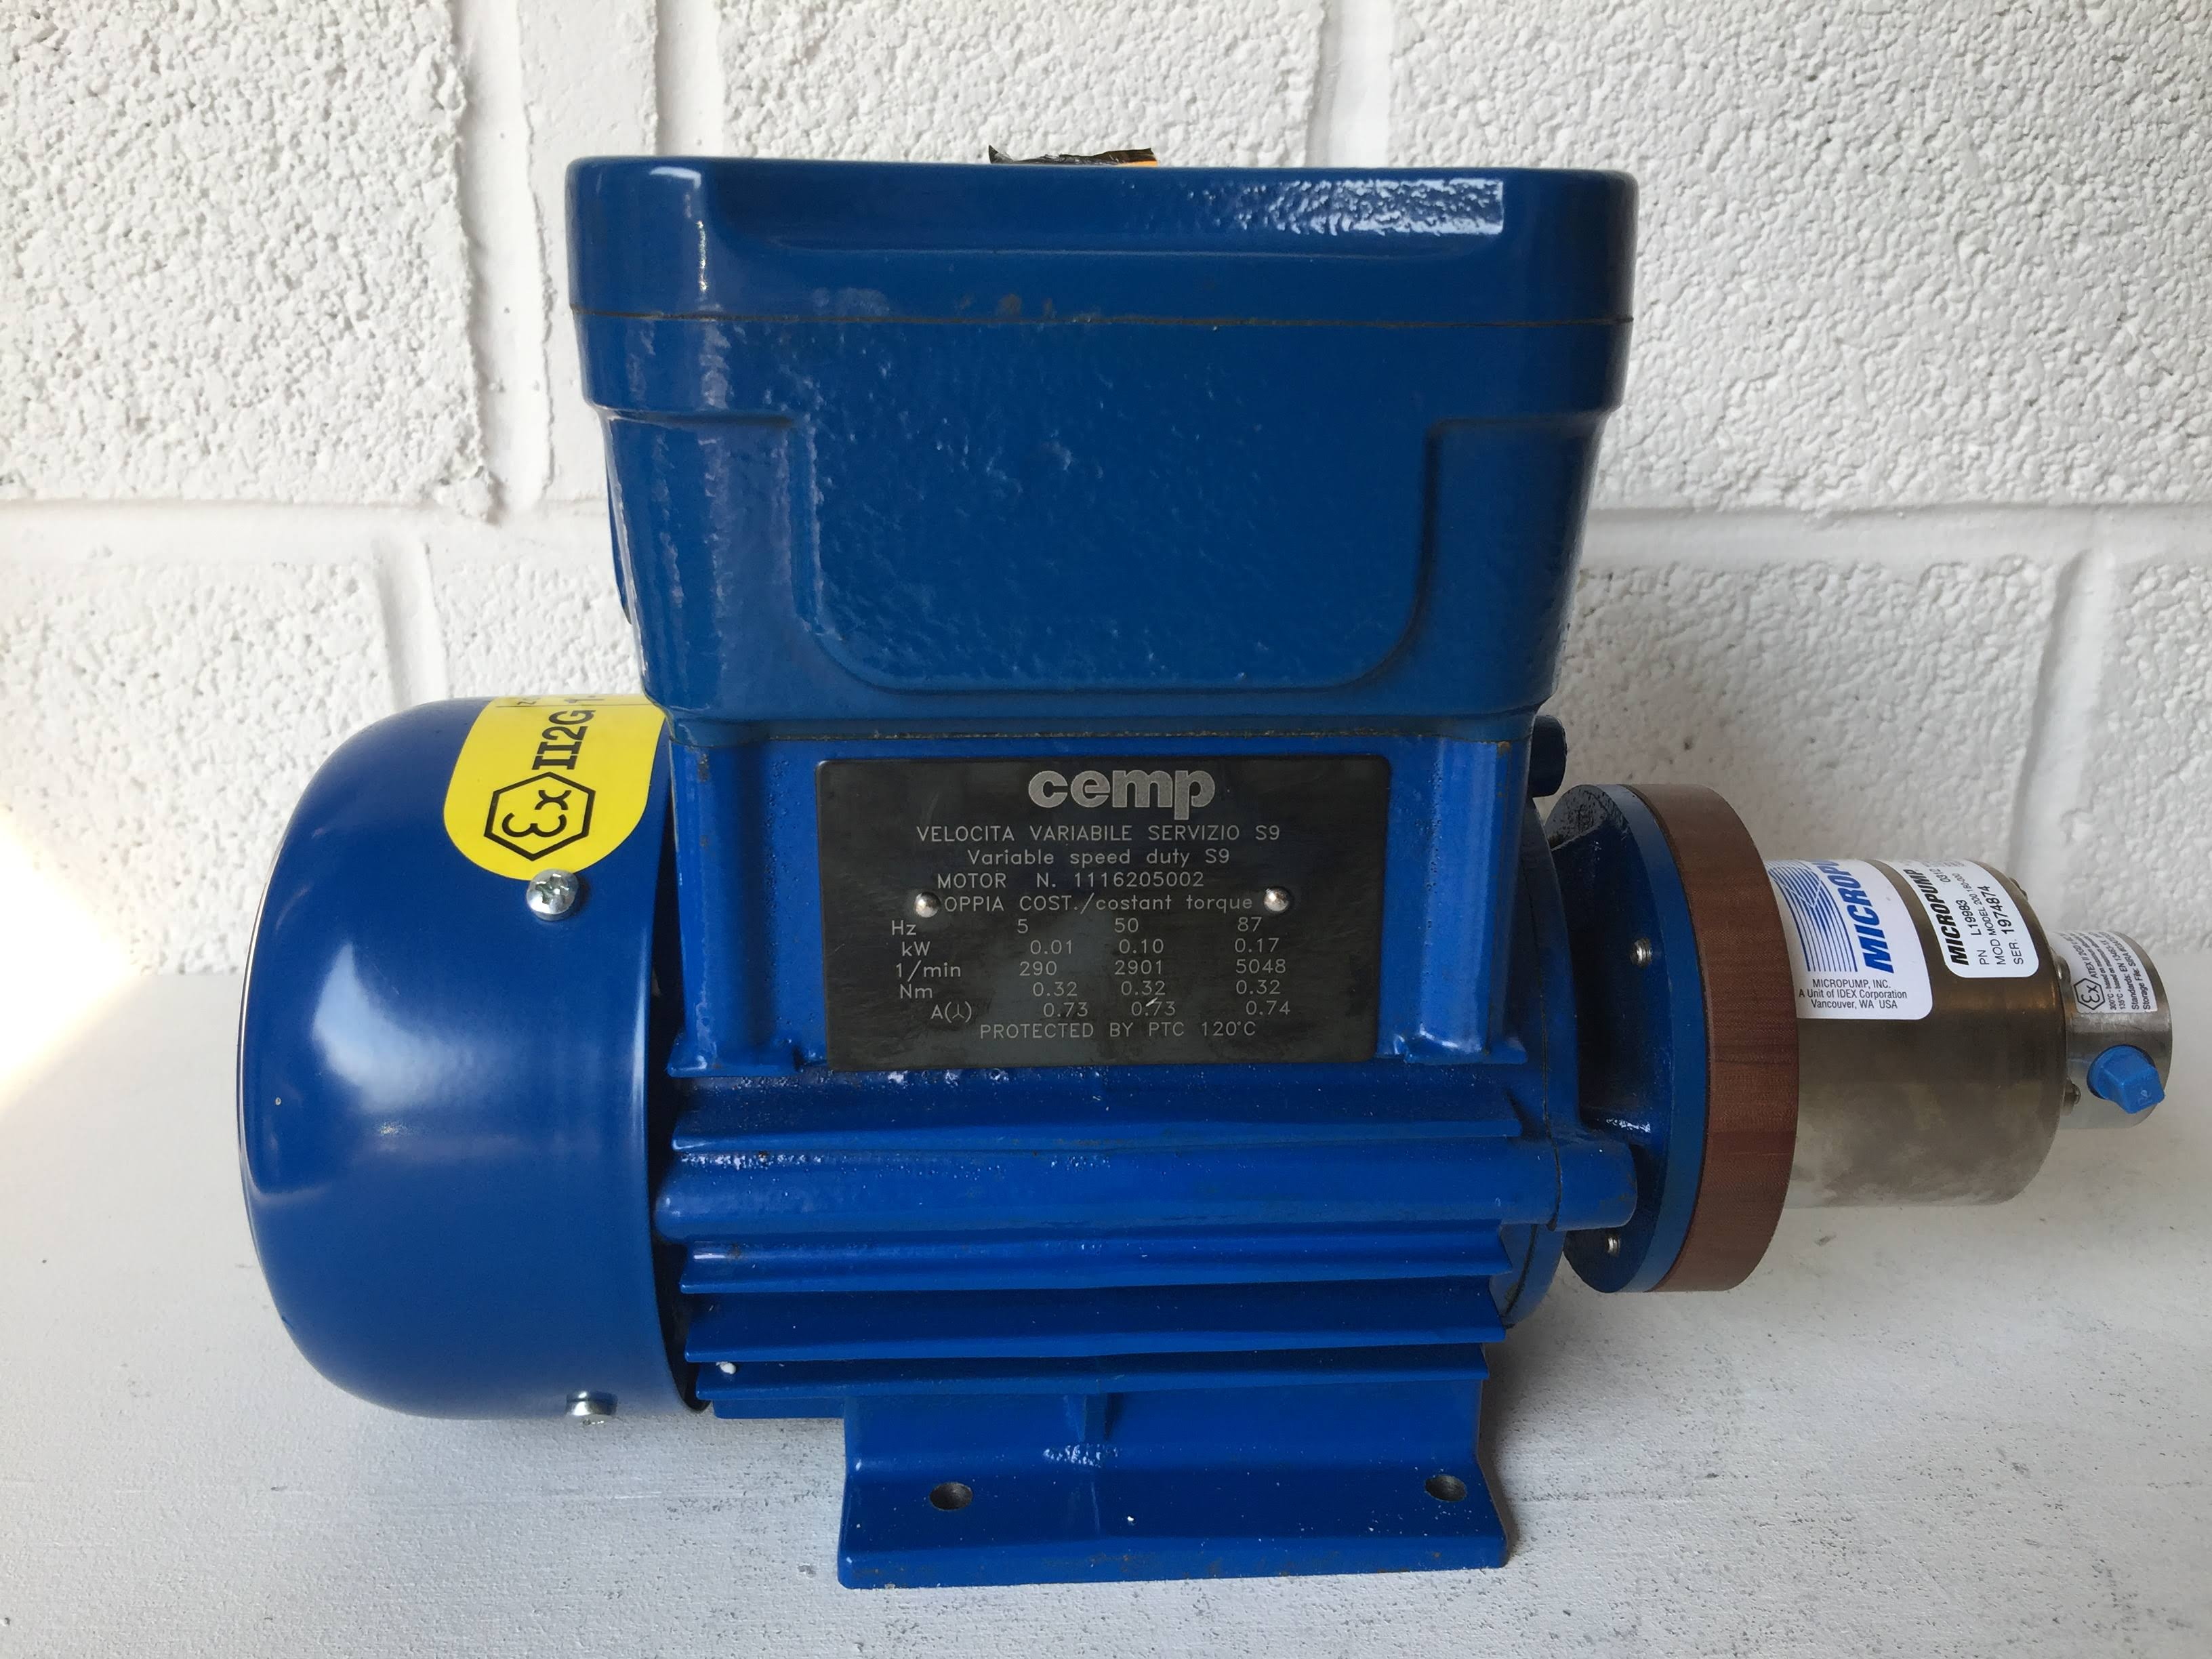 Cemp AC Motor with Micropump A‑Mount Cavity‑Style Pump Head (1974874)